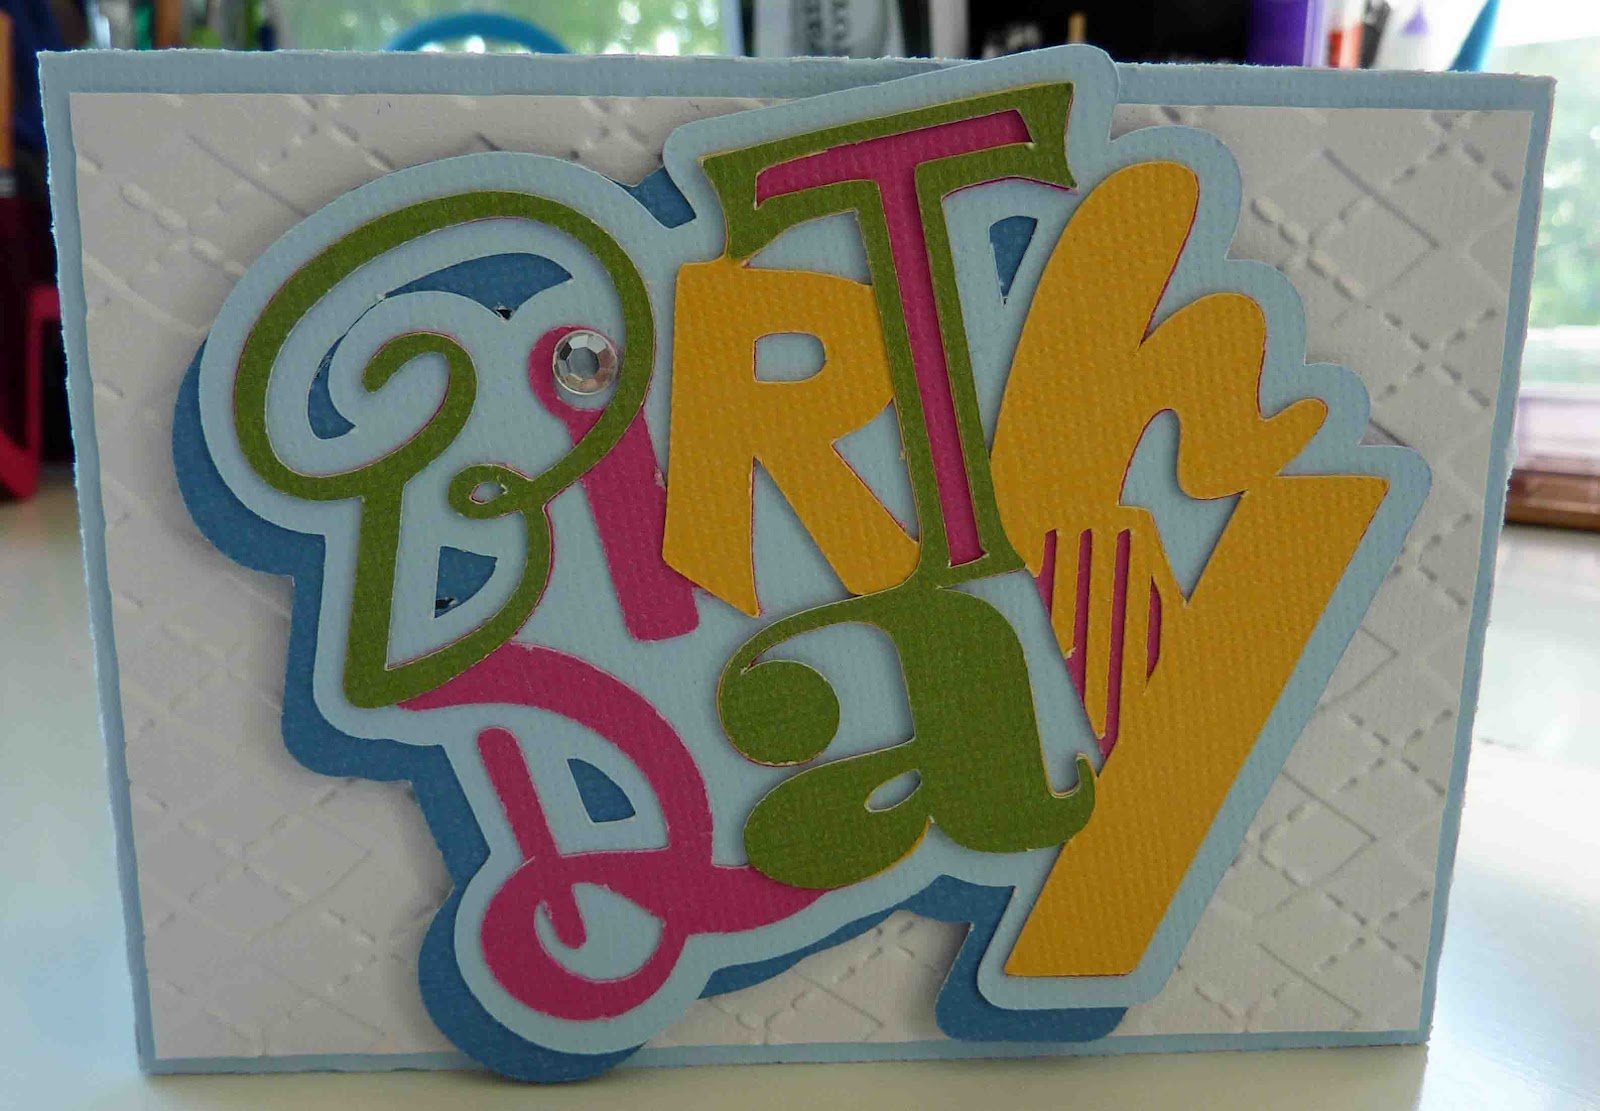 The Box Is A Fun Gift Card Holder I Bought Form Silhouette Store Removed Happy Birthday